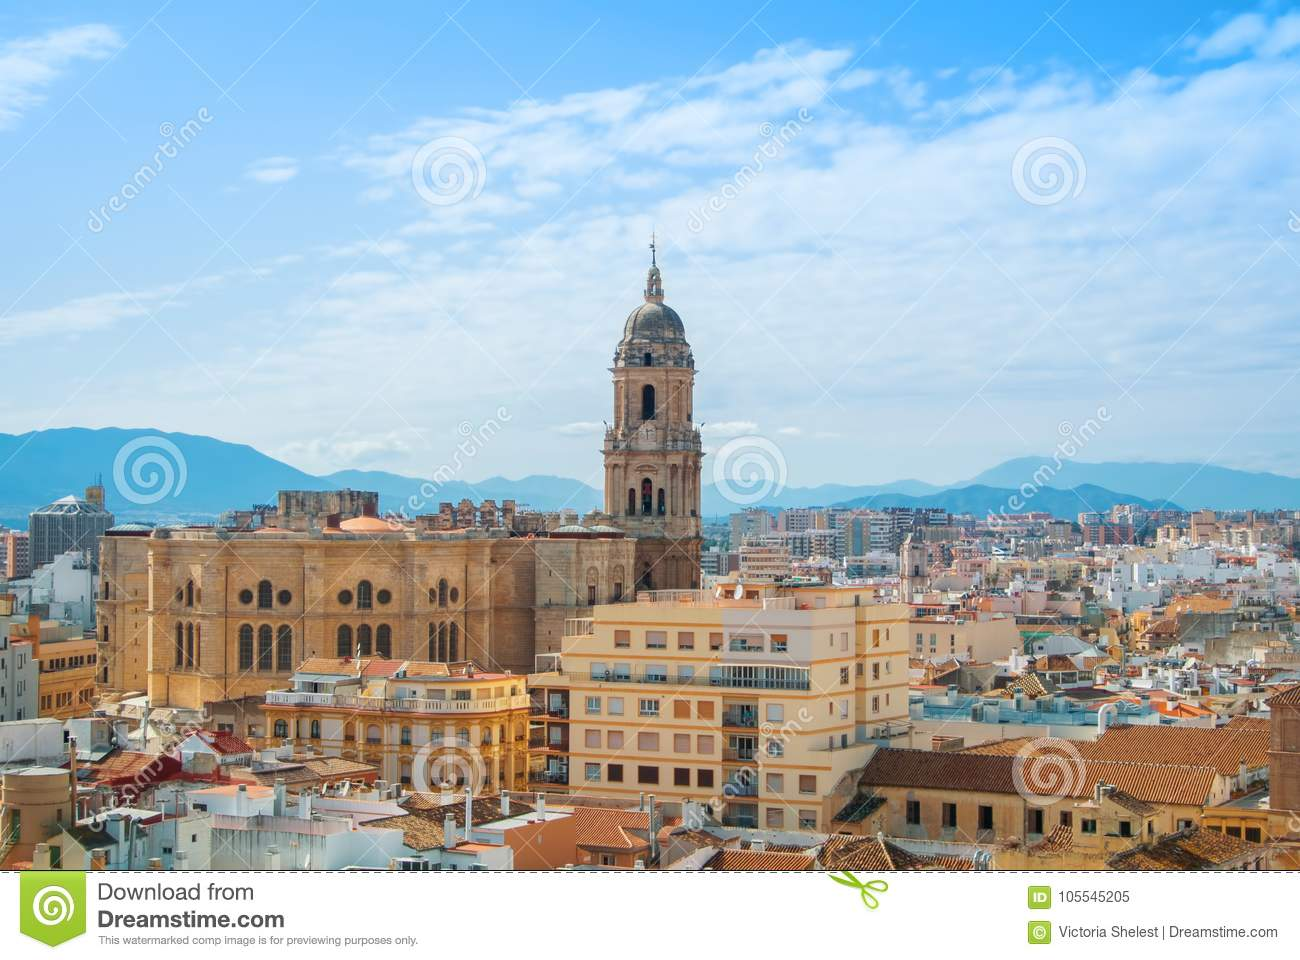 Aerial panoramic view over the roofs to a tower of Malaga Cathedral from the walls and towers of Castillo Gibralfaro (Castle of G